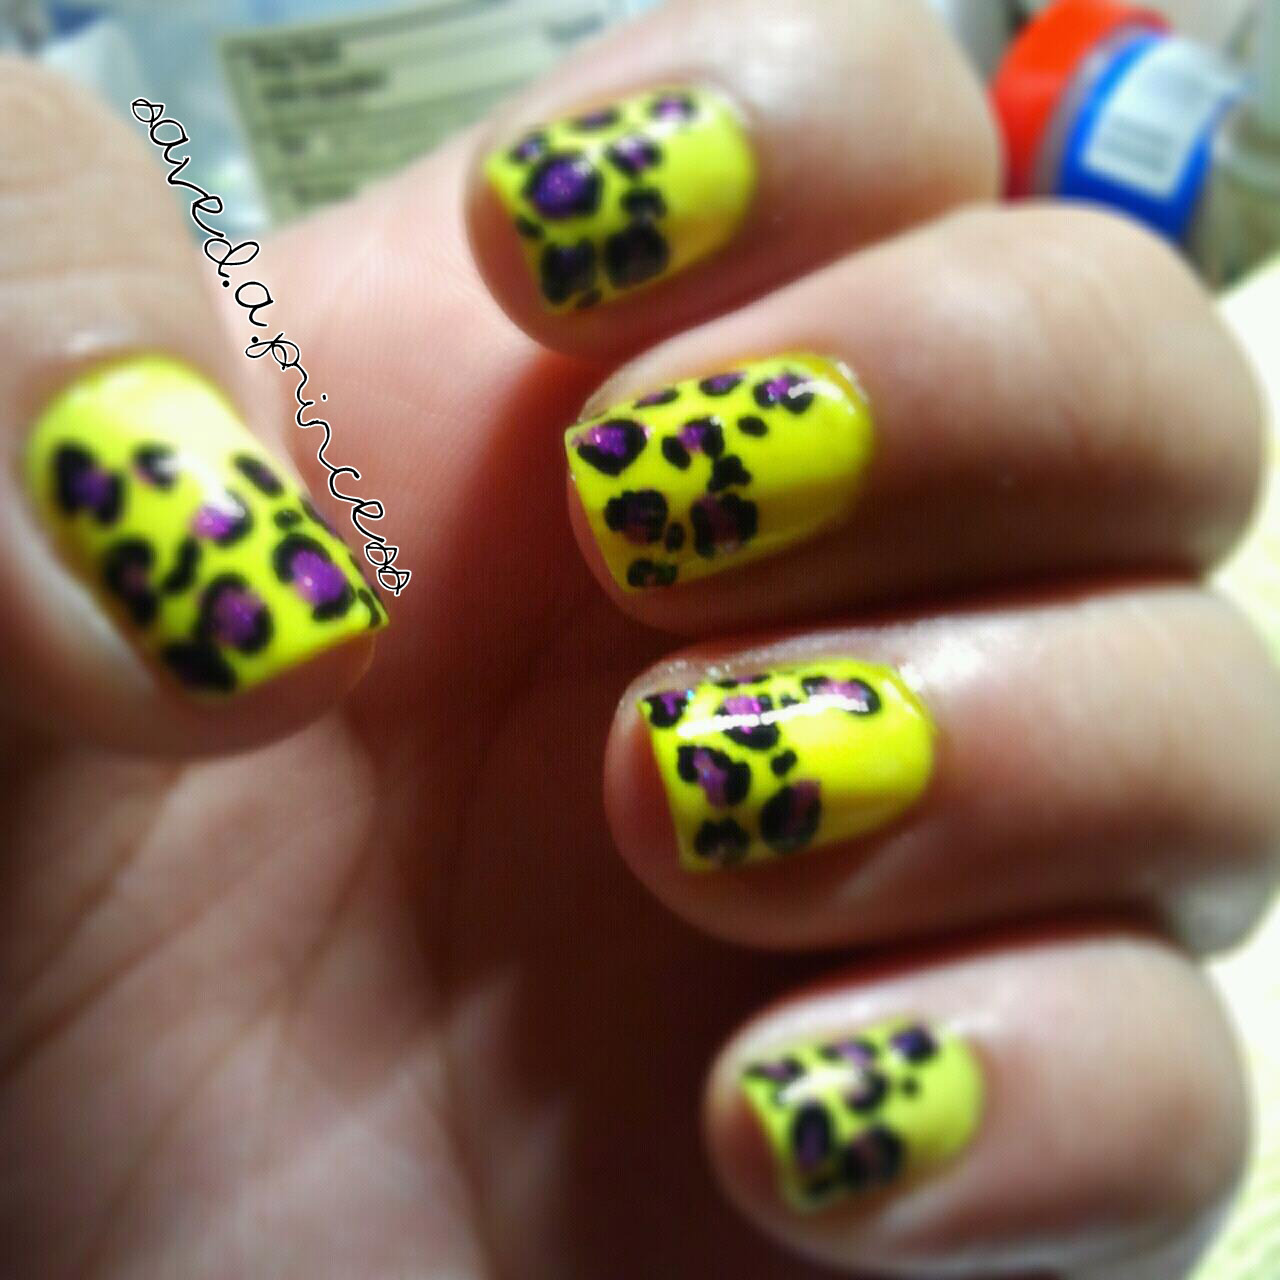 Neon yellow nails with purple glitter leopard print